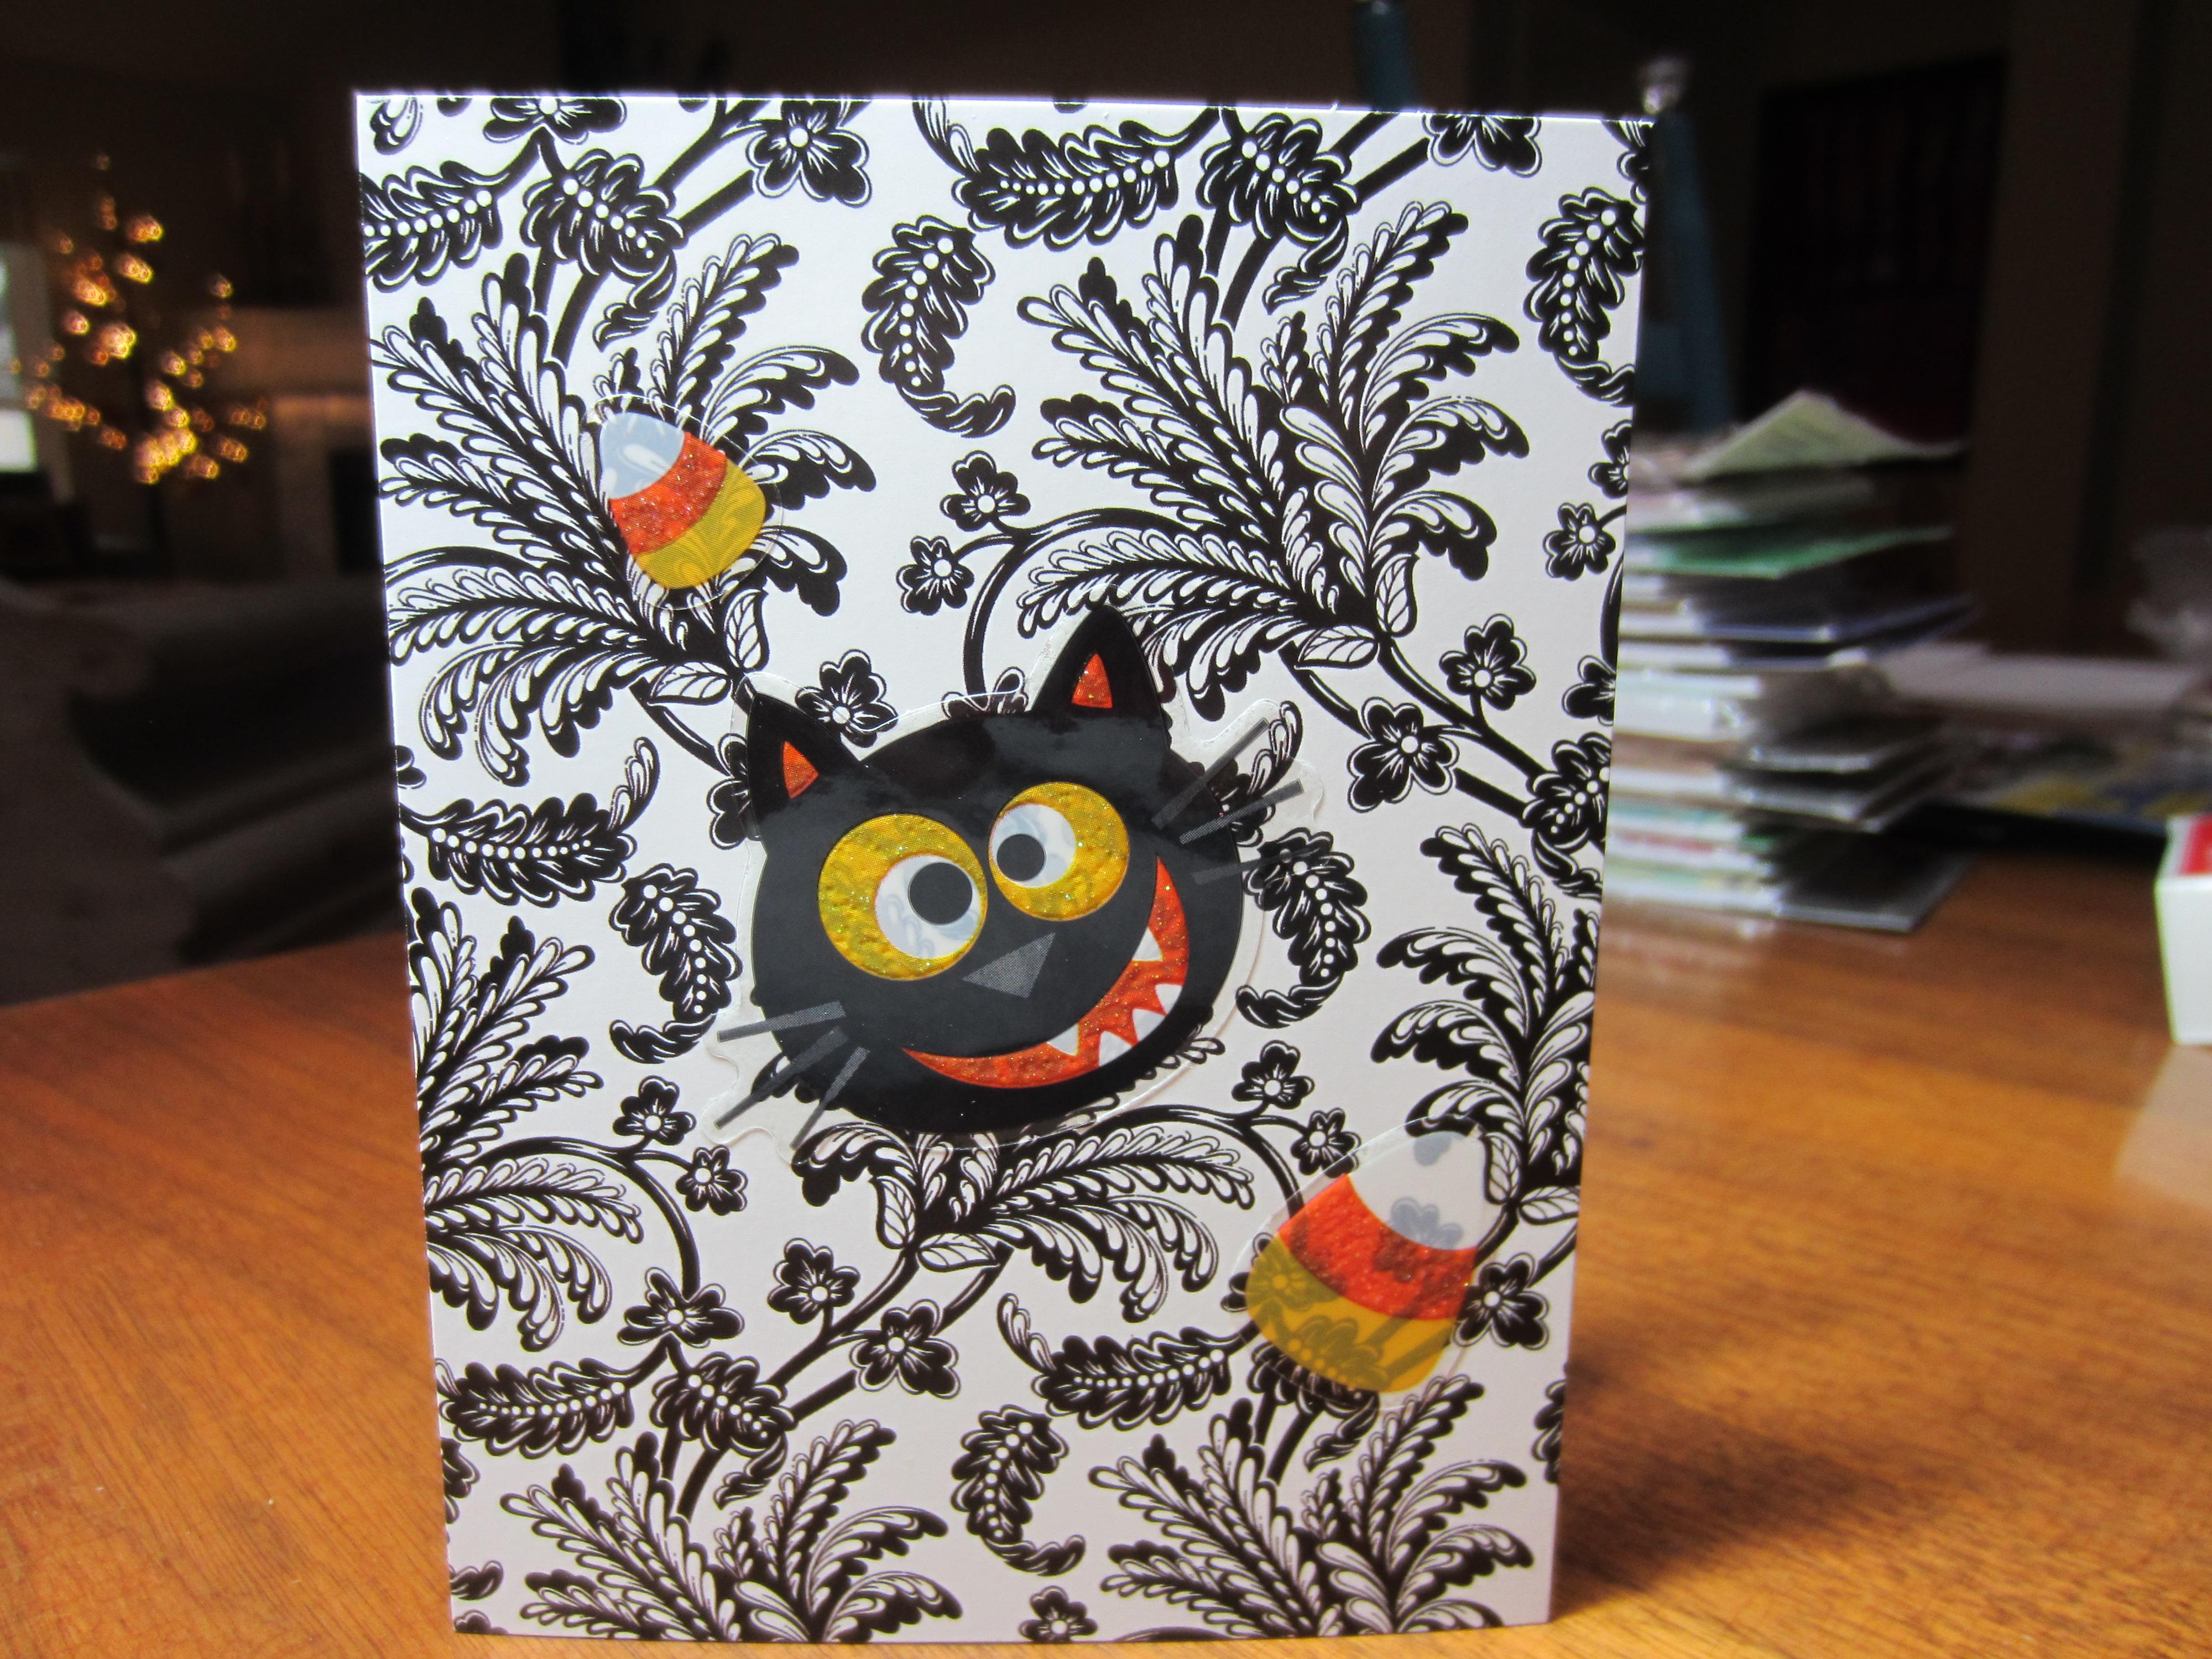 Black cat Halloween card, with a little candy corn!